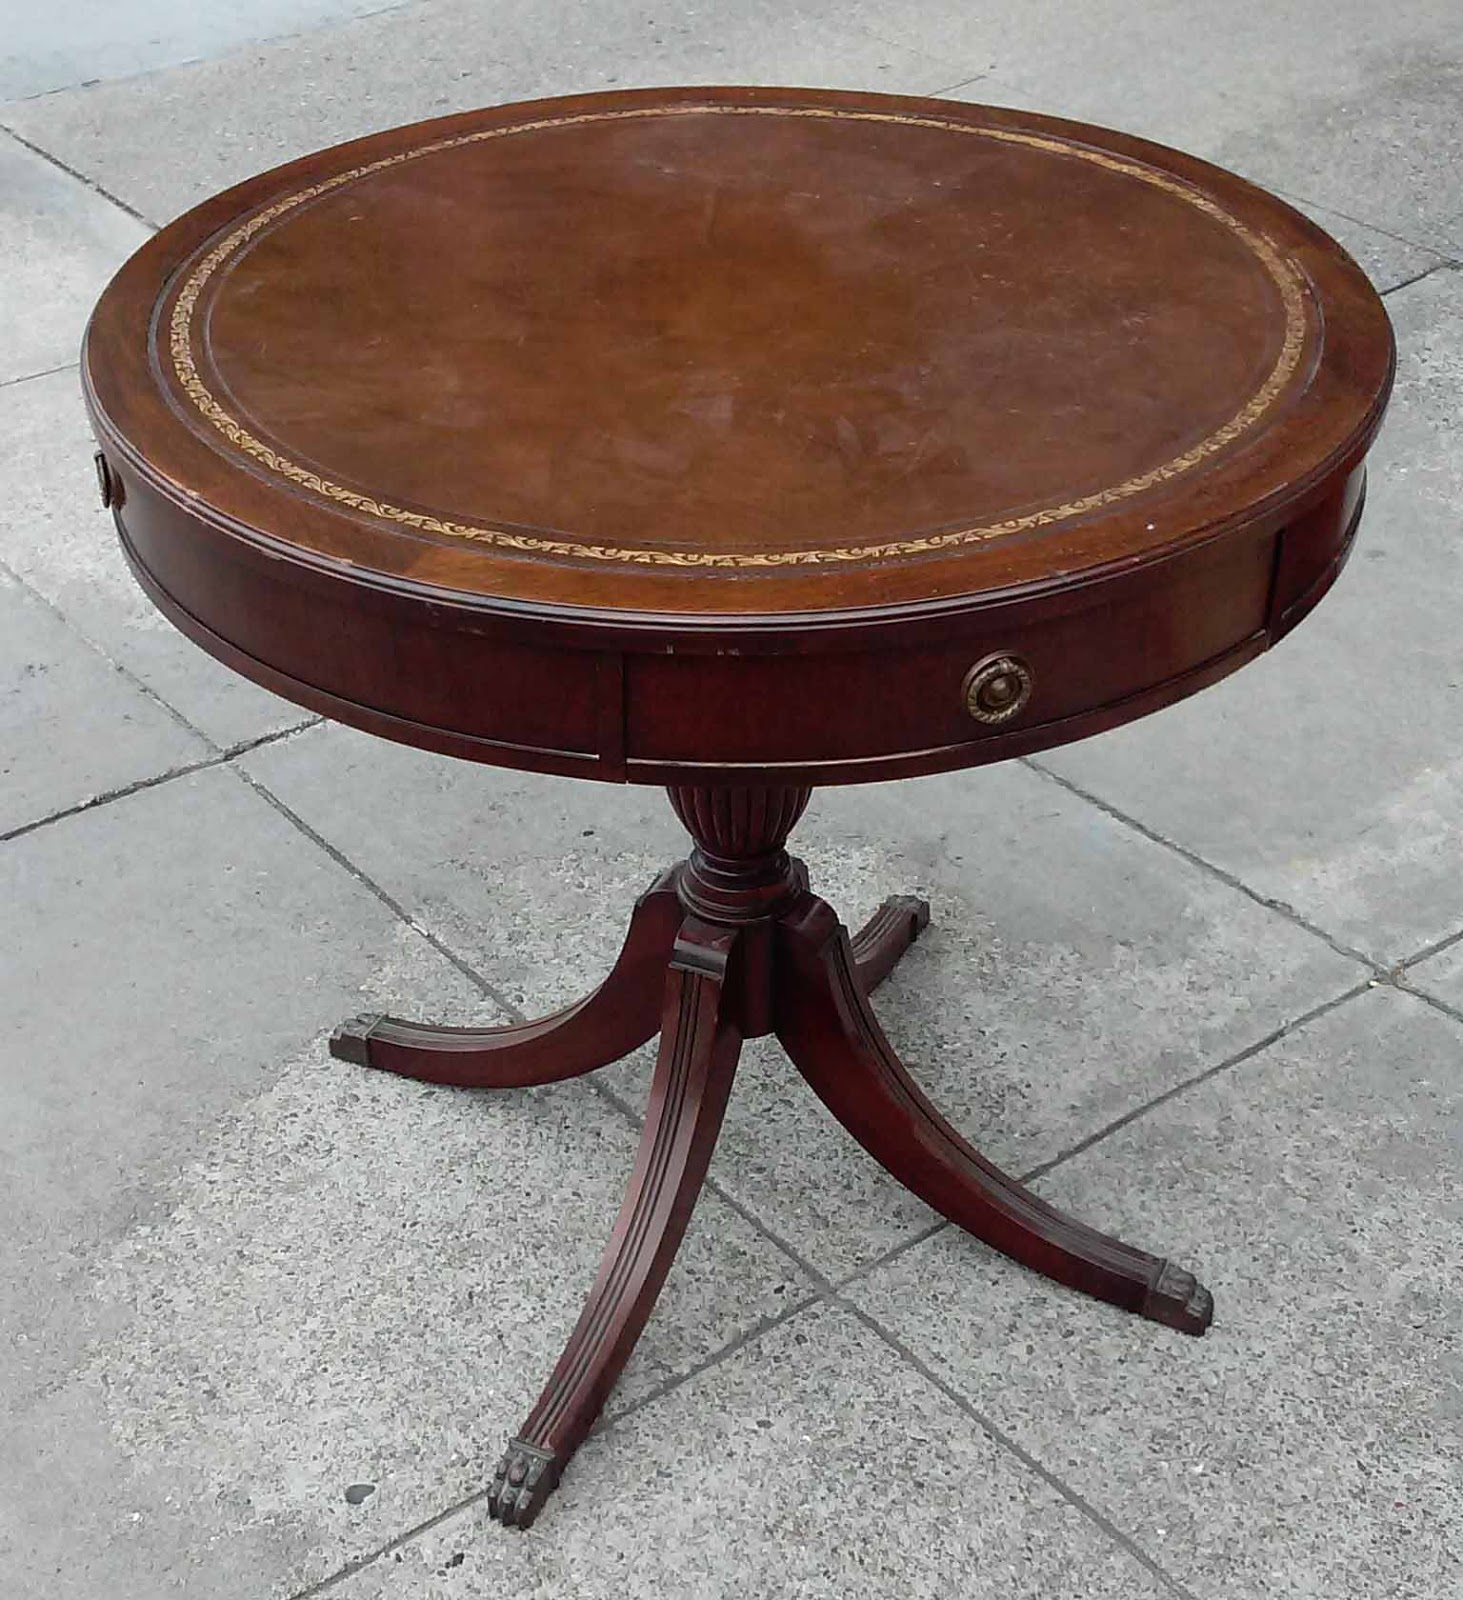 UHURU FURNITURE & COLLECTIBLES: SOLD Duncan Phyfe Style